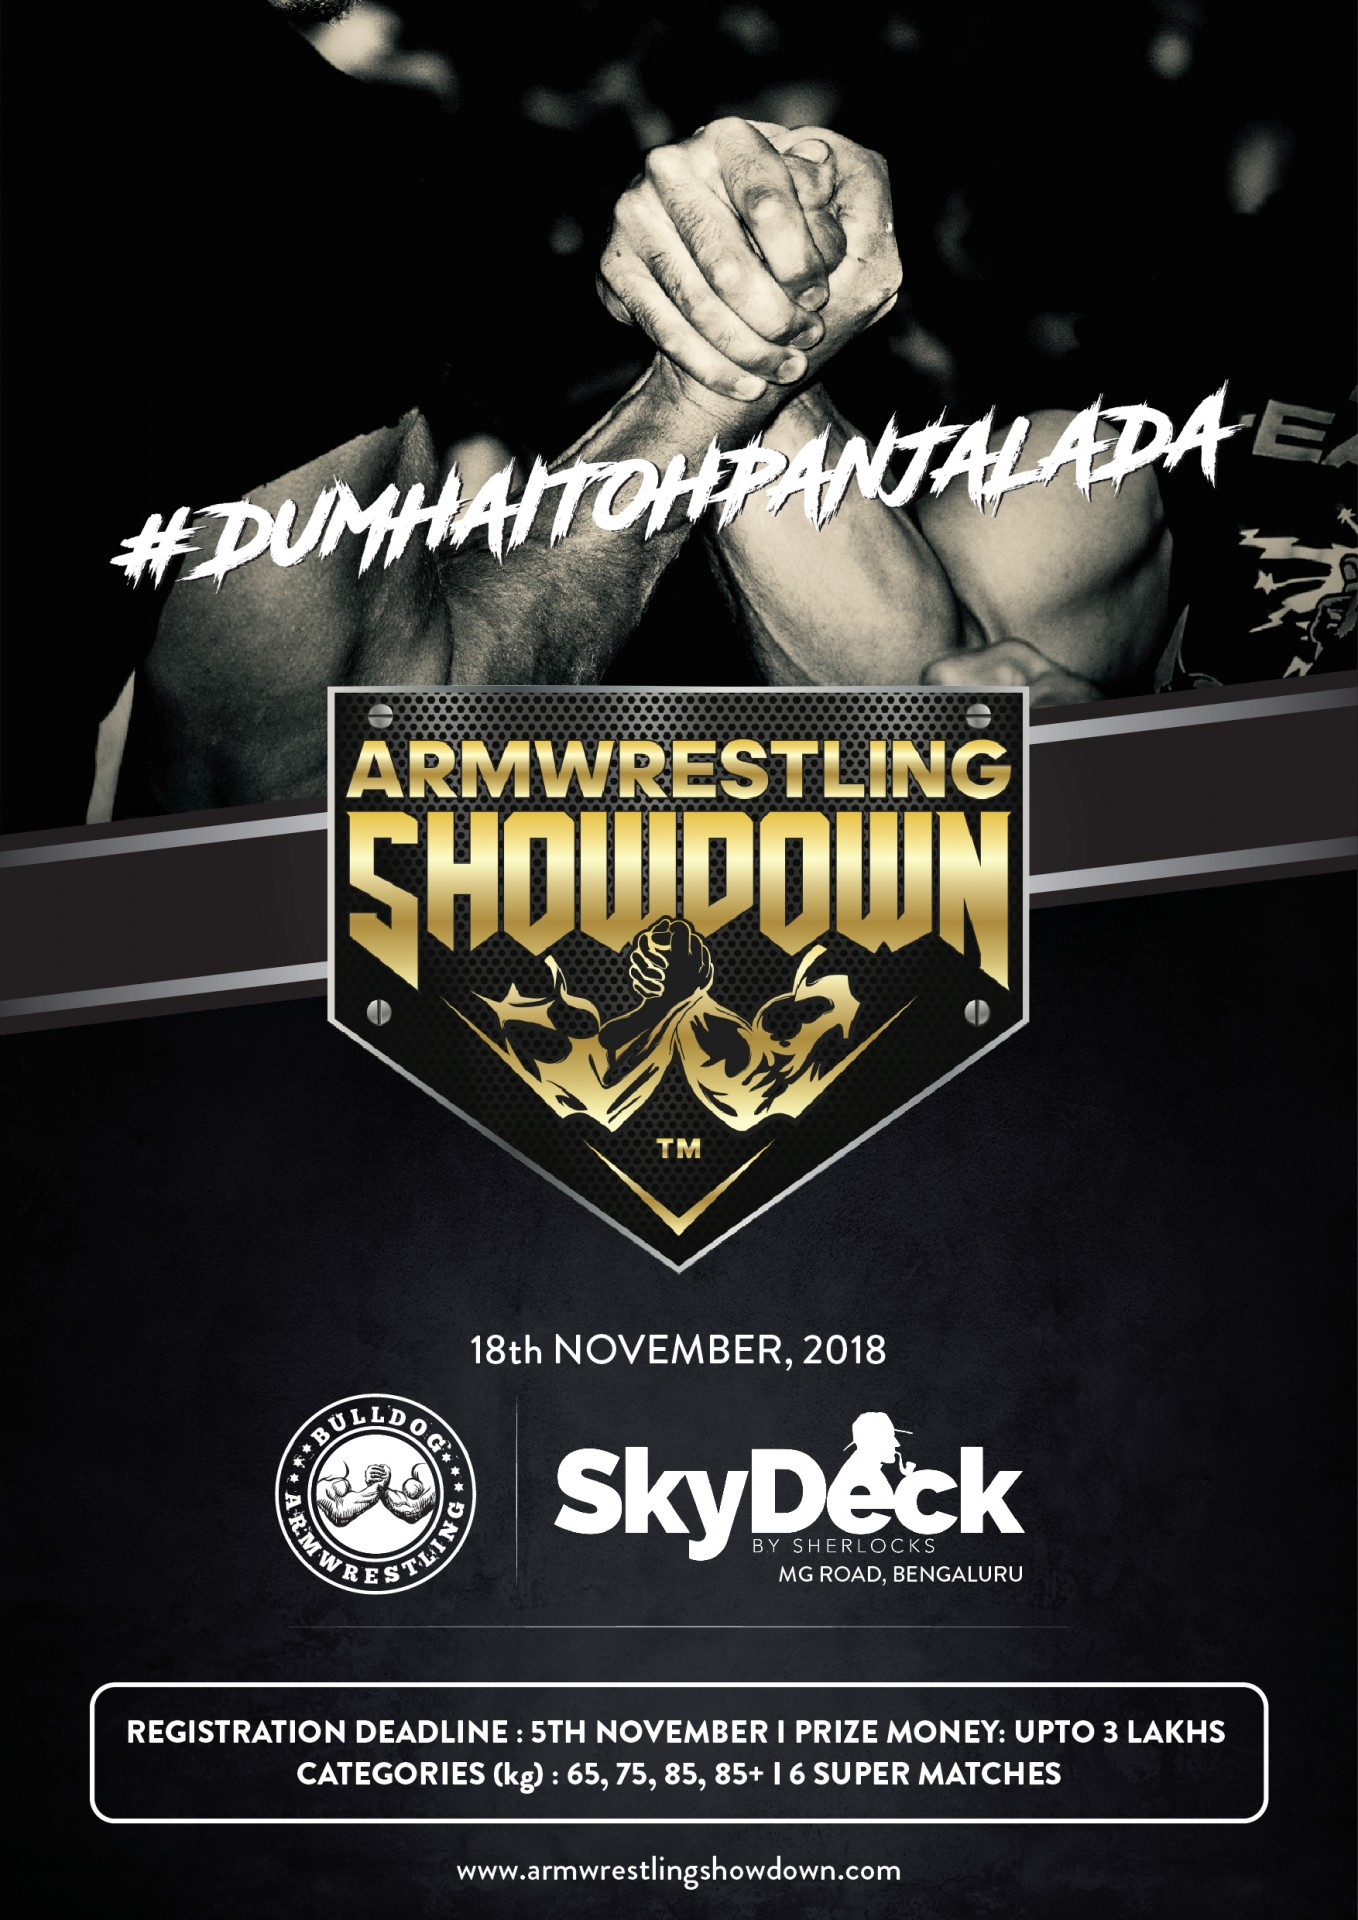 Bulldog Armwrestling Presents AWS – ARMWRESTLING SHOWDOWN